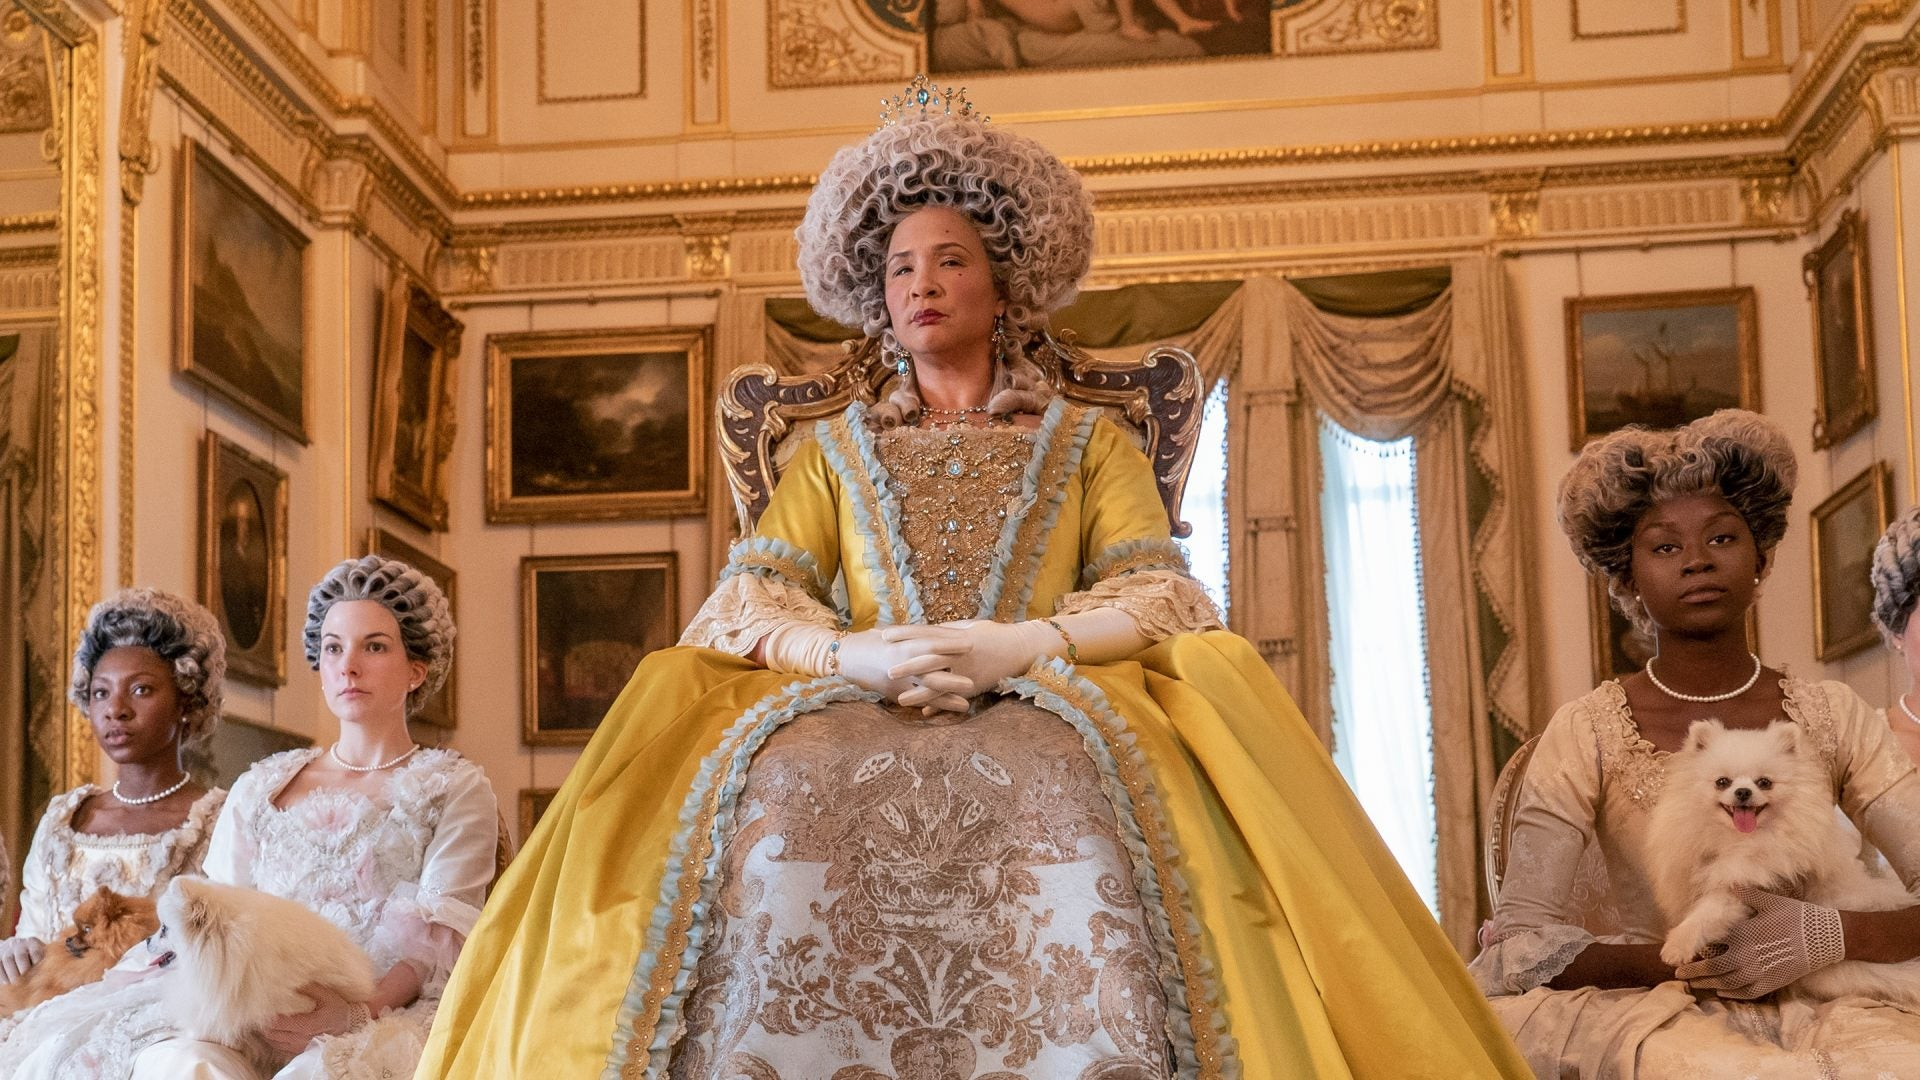 'Bridgerton's' Golda Rosheuvel On Playing Queen Charlotte: 'It Gives Us A Seat At The Round Table'